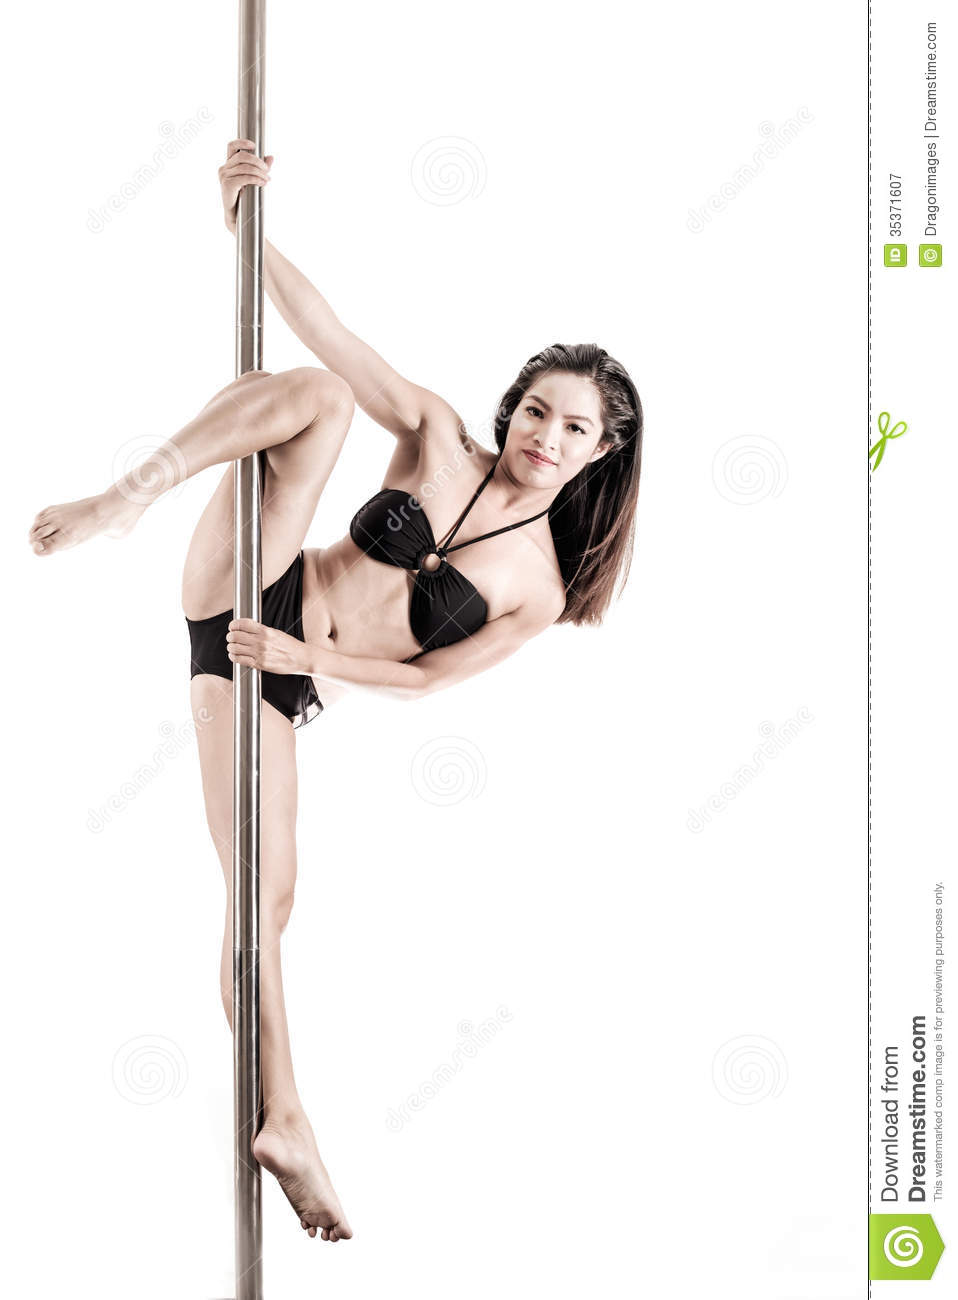 Pole Dancer Royalty Free Stock Photography - Image: 35371607